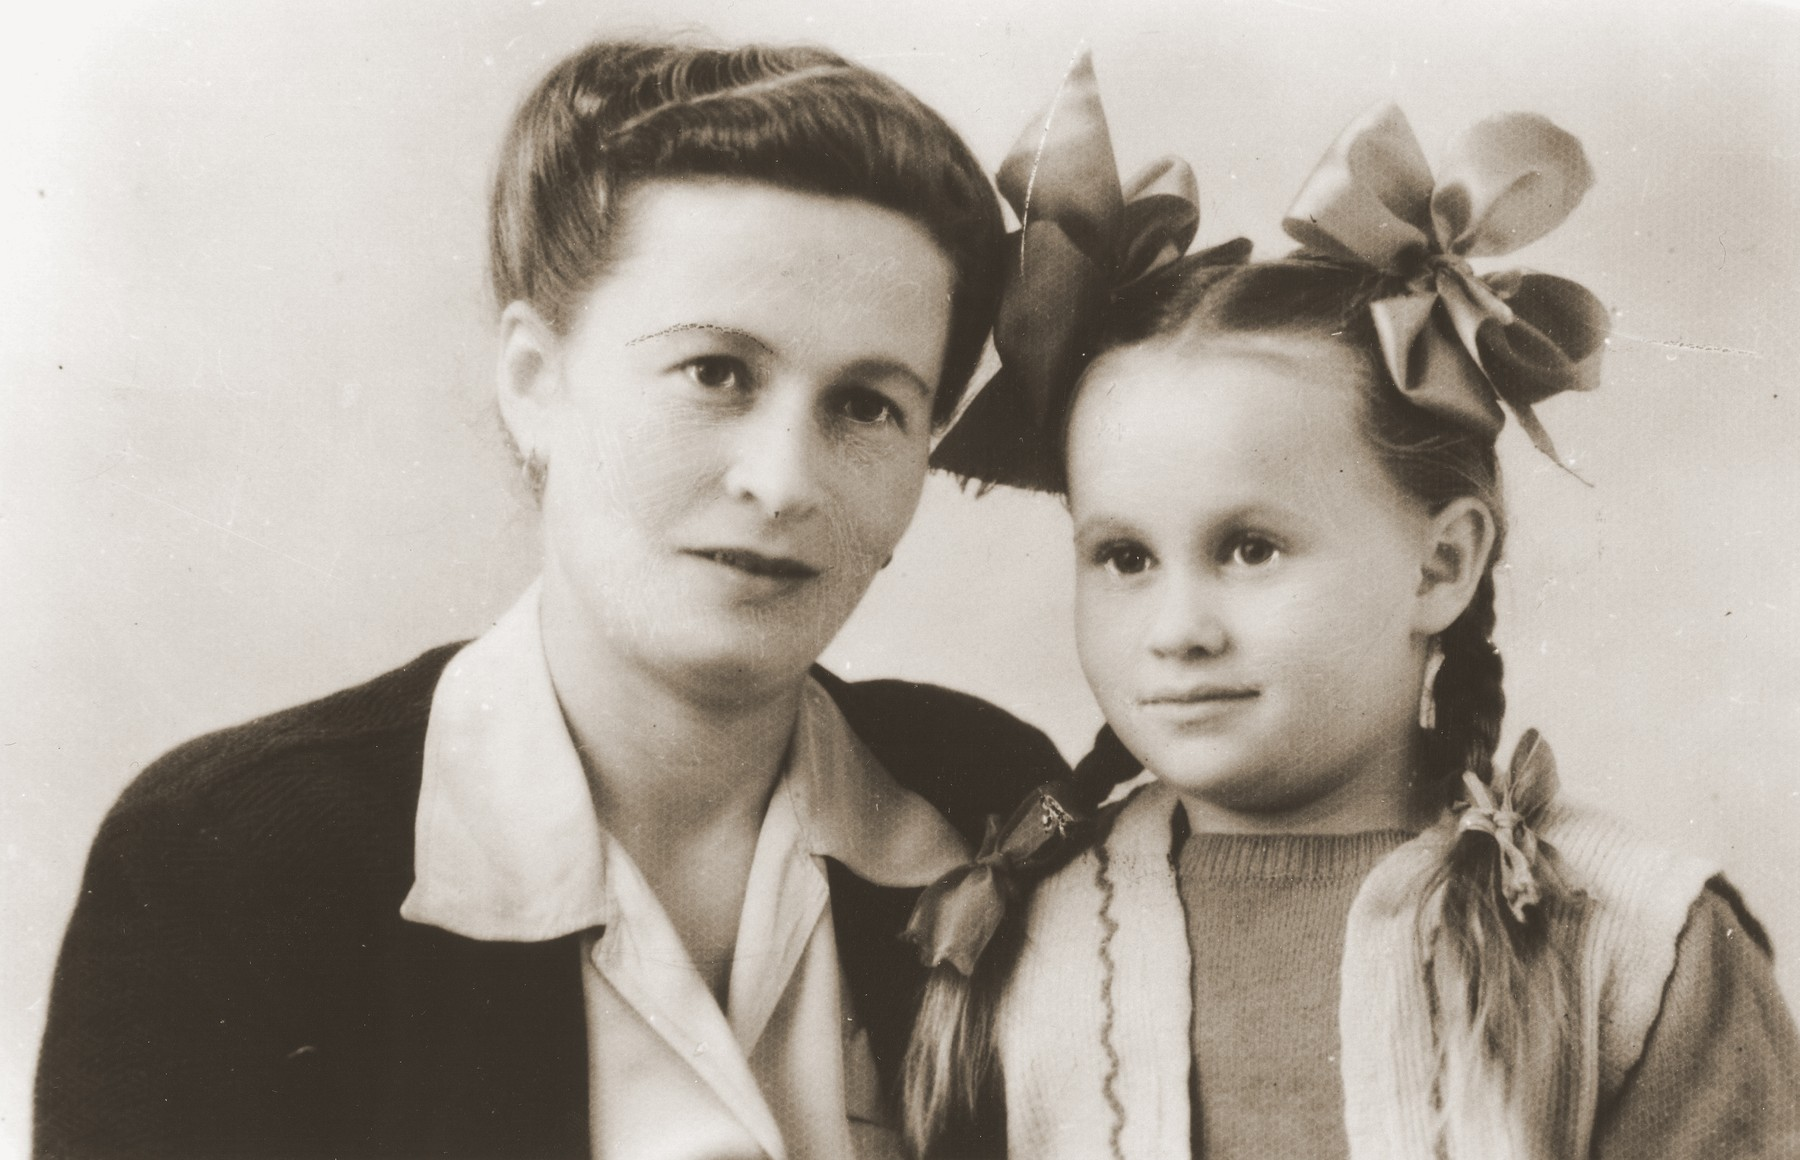 Studio portrait of a Jewish DP mother and daughter in the Trani displaced persons camp.  Pictured are Zelda and Masha Leikach.